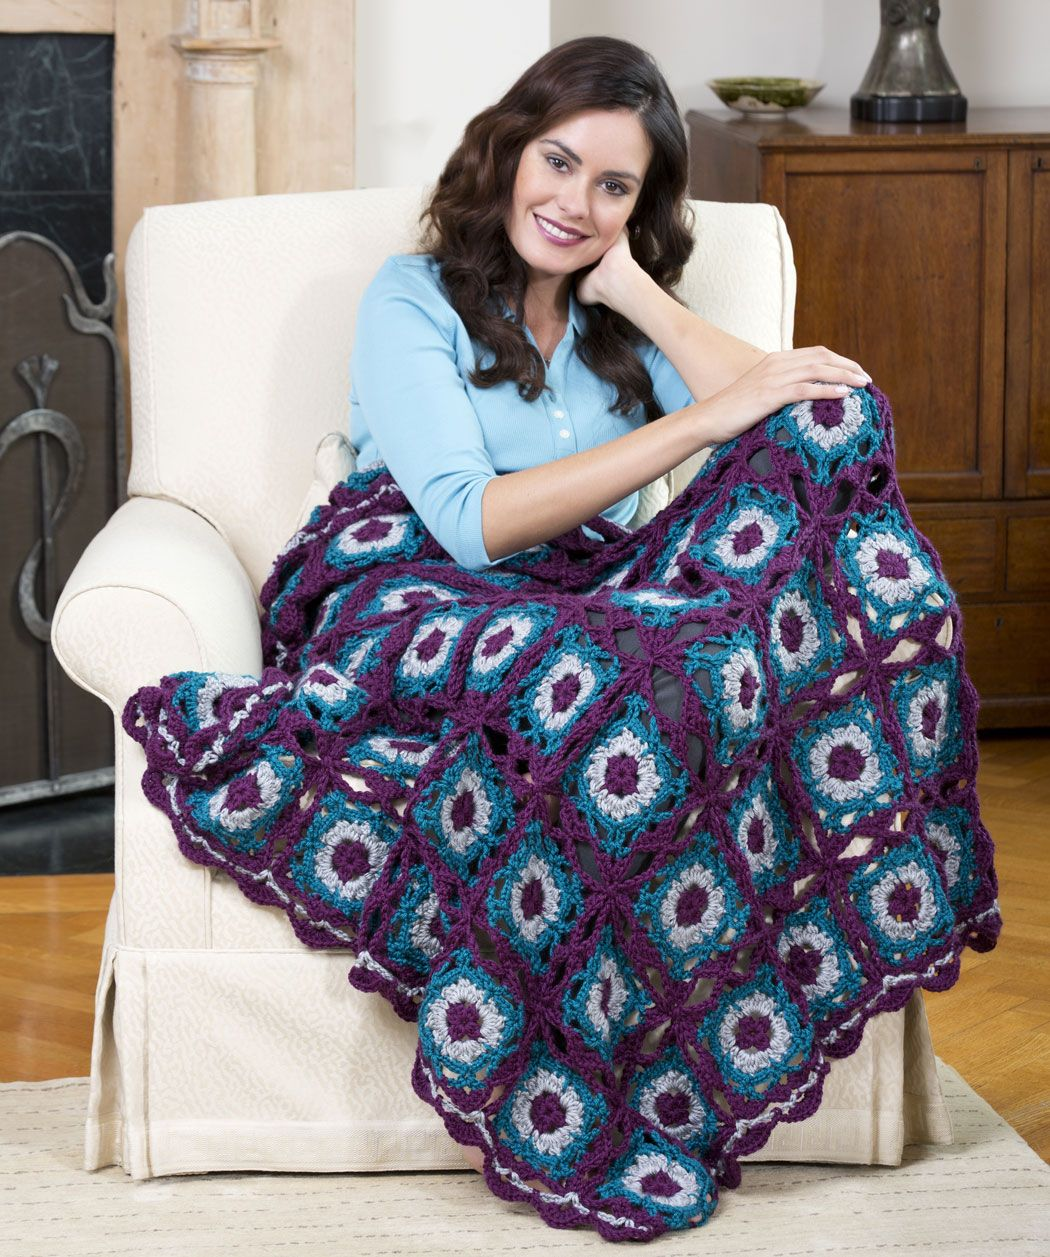 Lacy Square Blanket Free Crochet Pattern From Red Heart Yarn Knit